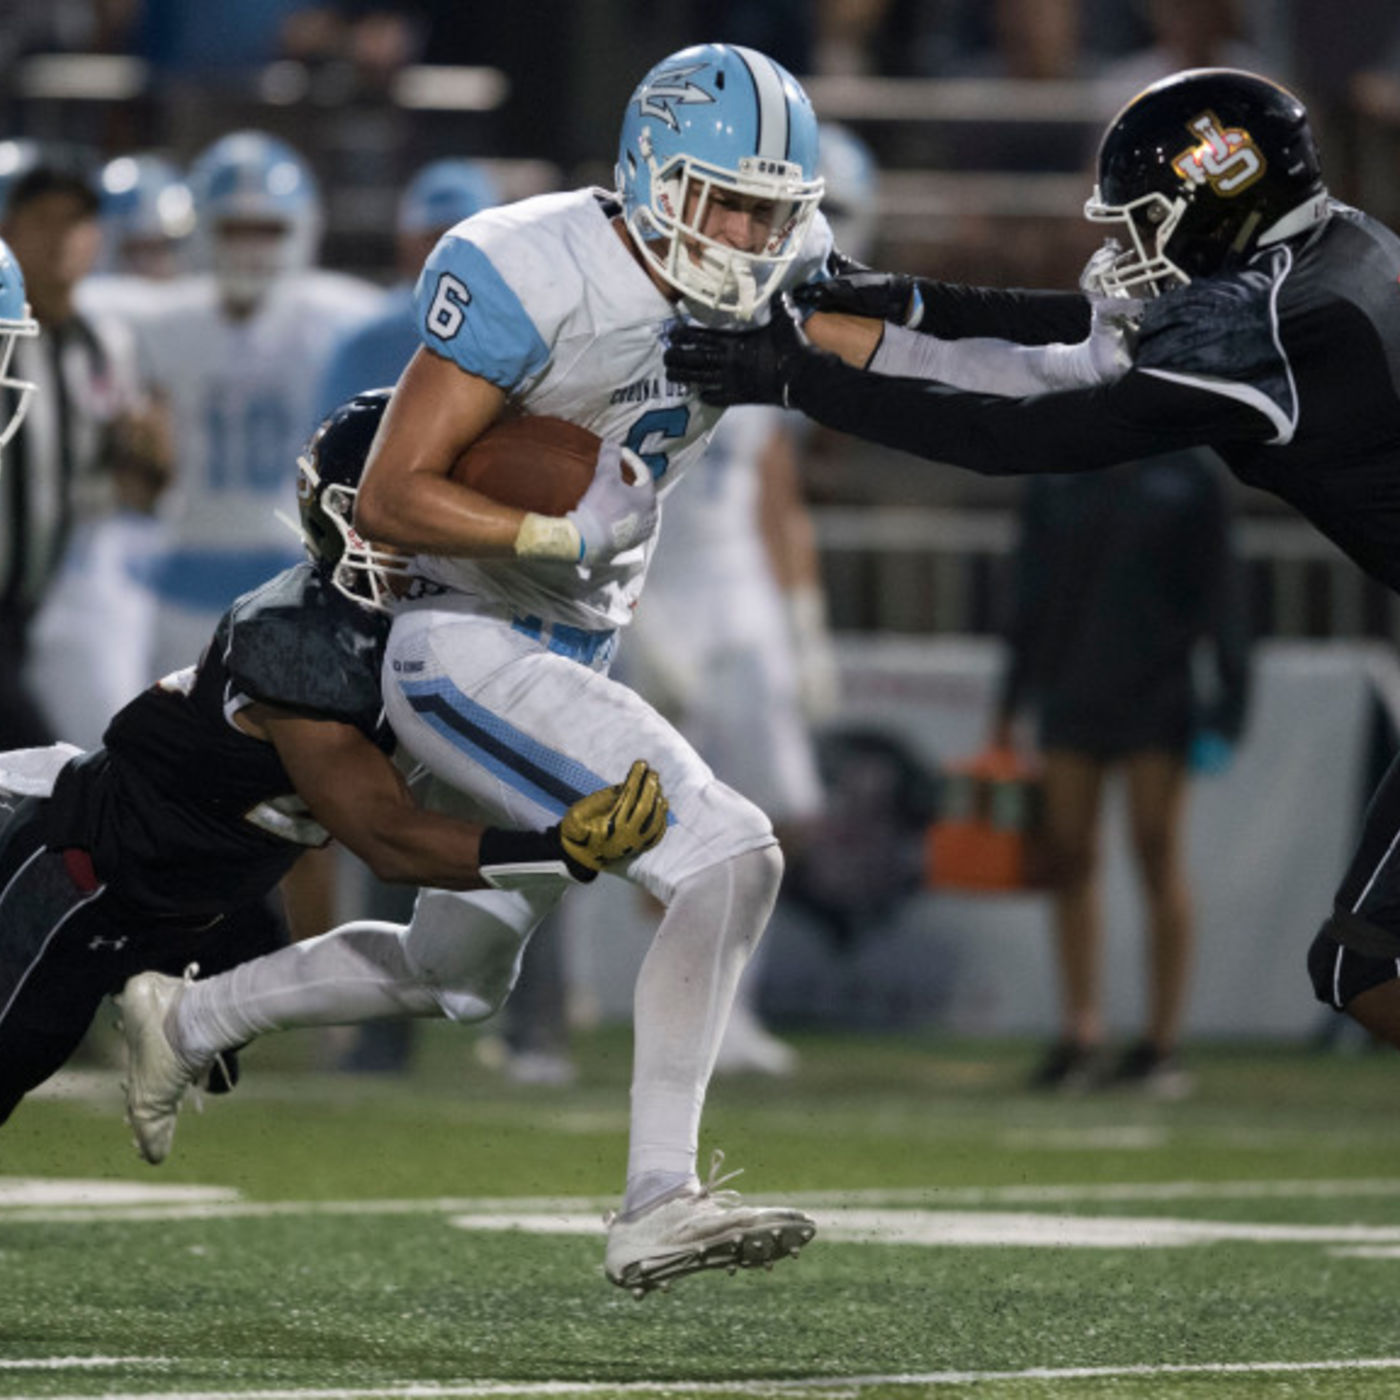 Trinity League Football Podcast: Week 0 grades, players of the week, preview of huge Week 1